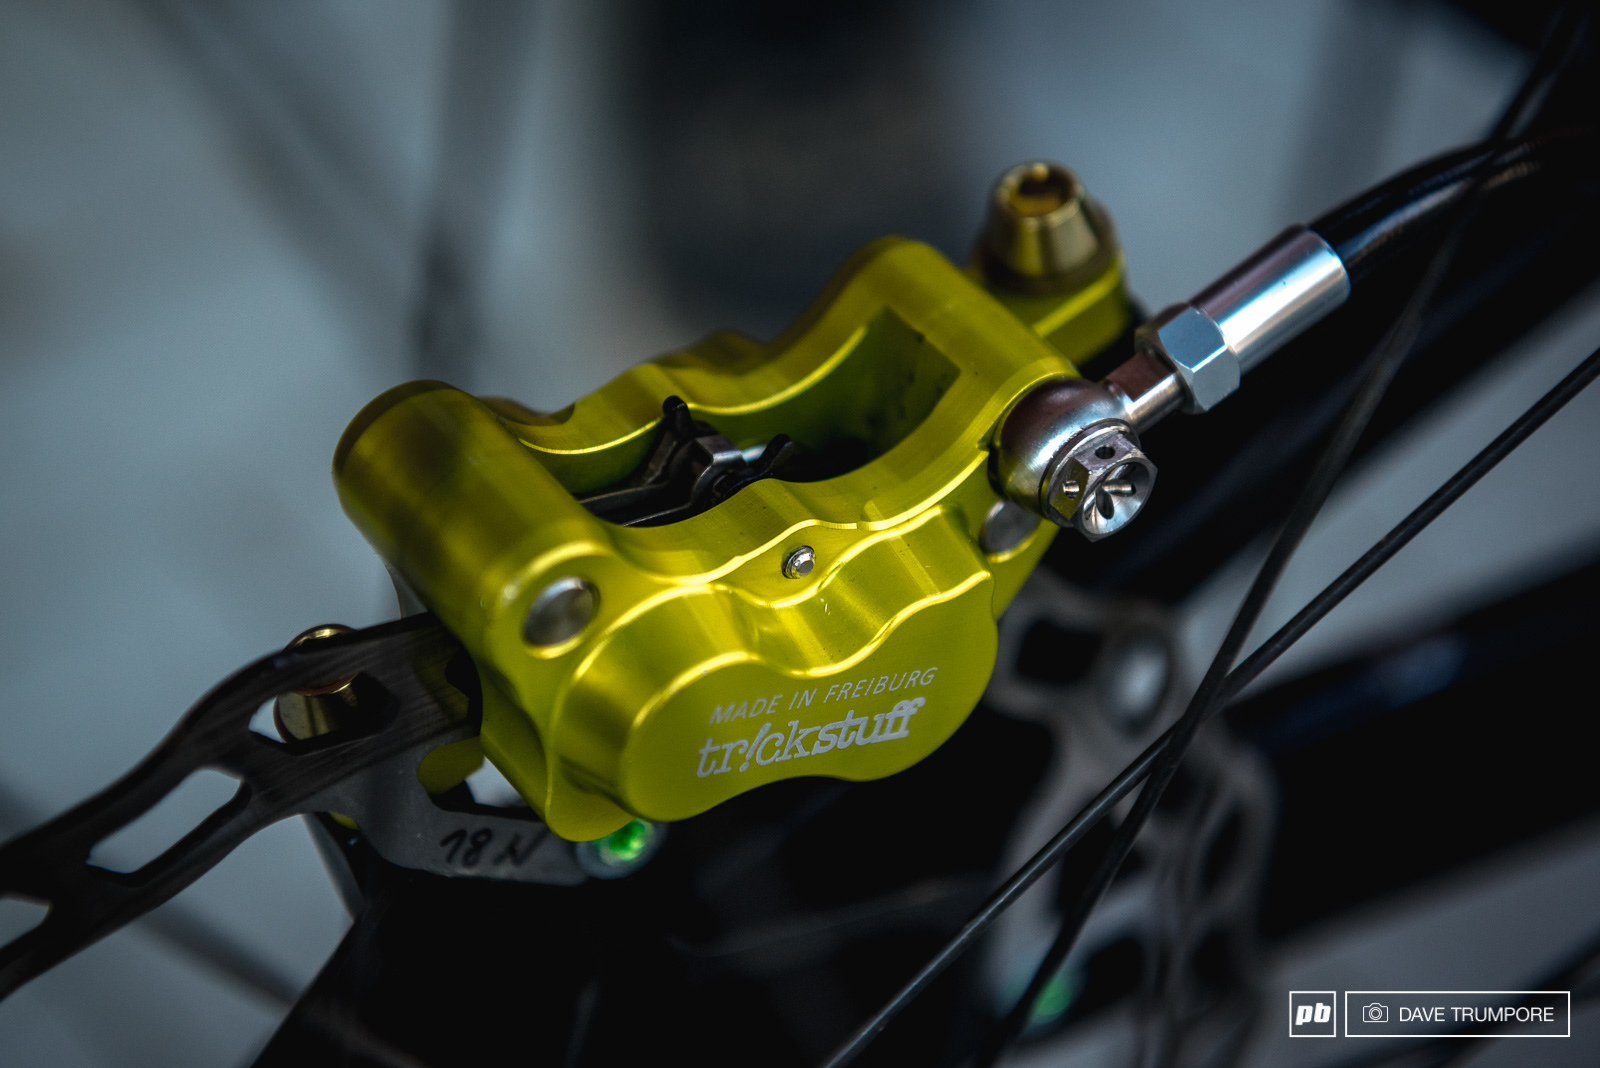 Mick Hannah has some anodized trickery on his brakes this weekend to match his Aussie paint job.